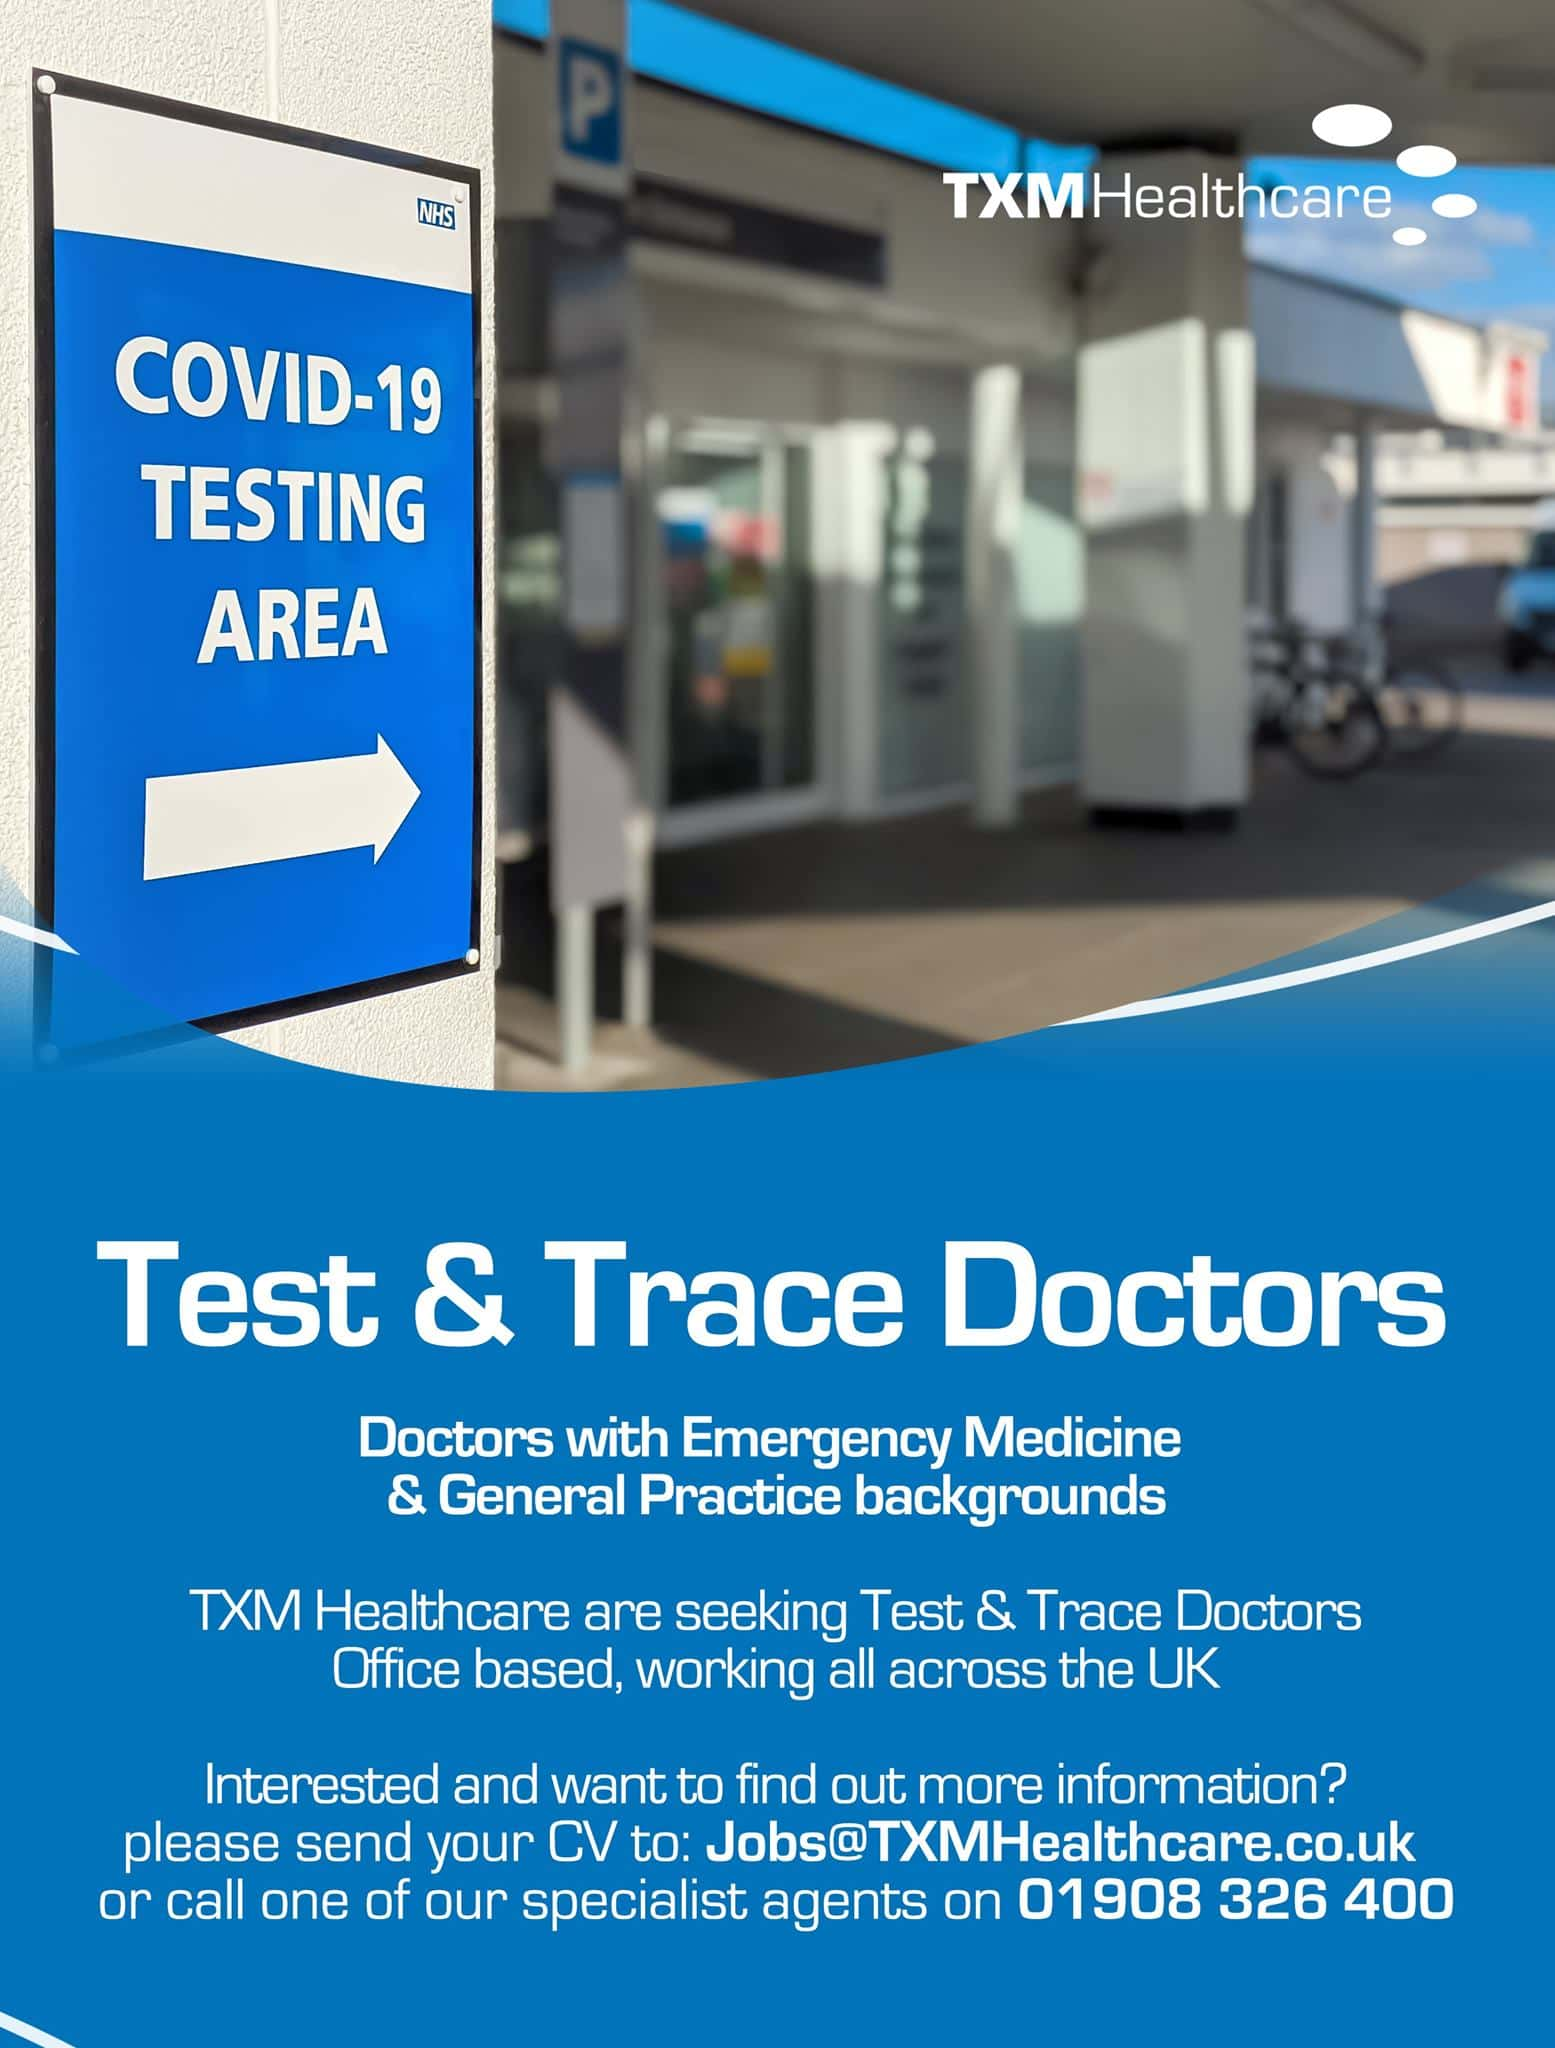 TEST & TRACE: Join the Covid19 test and trace workforce. We're looking for d…